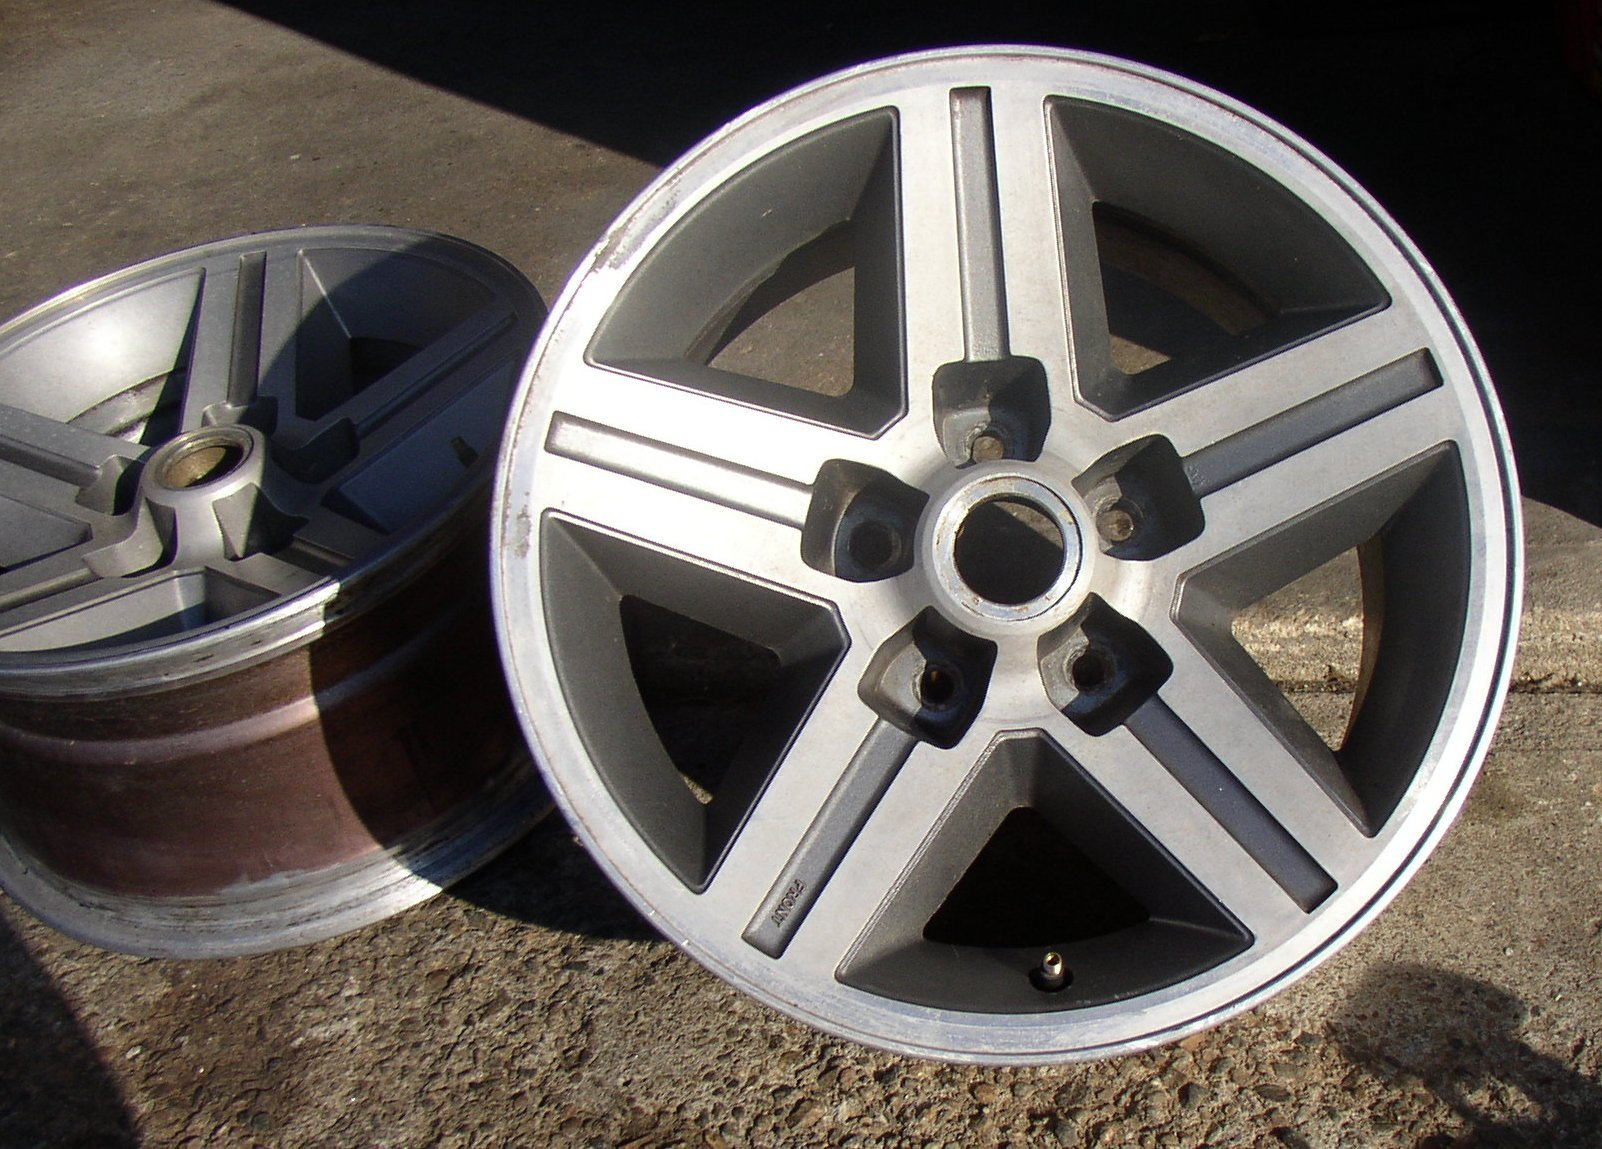 Camaro Berlinetta Z28 Iroc Parts Wheels